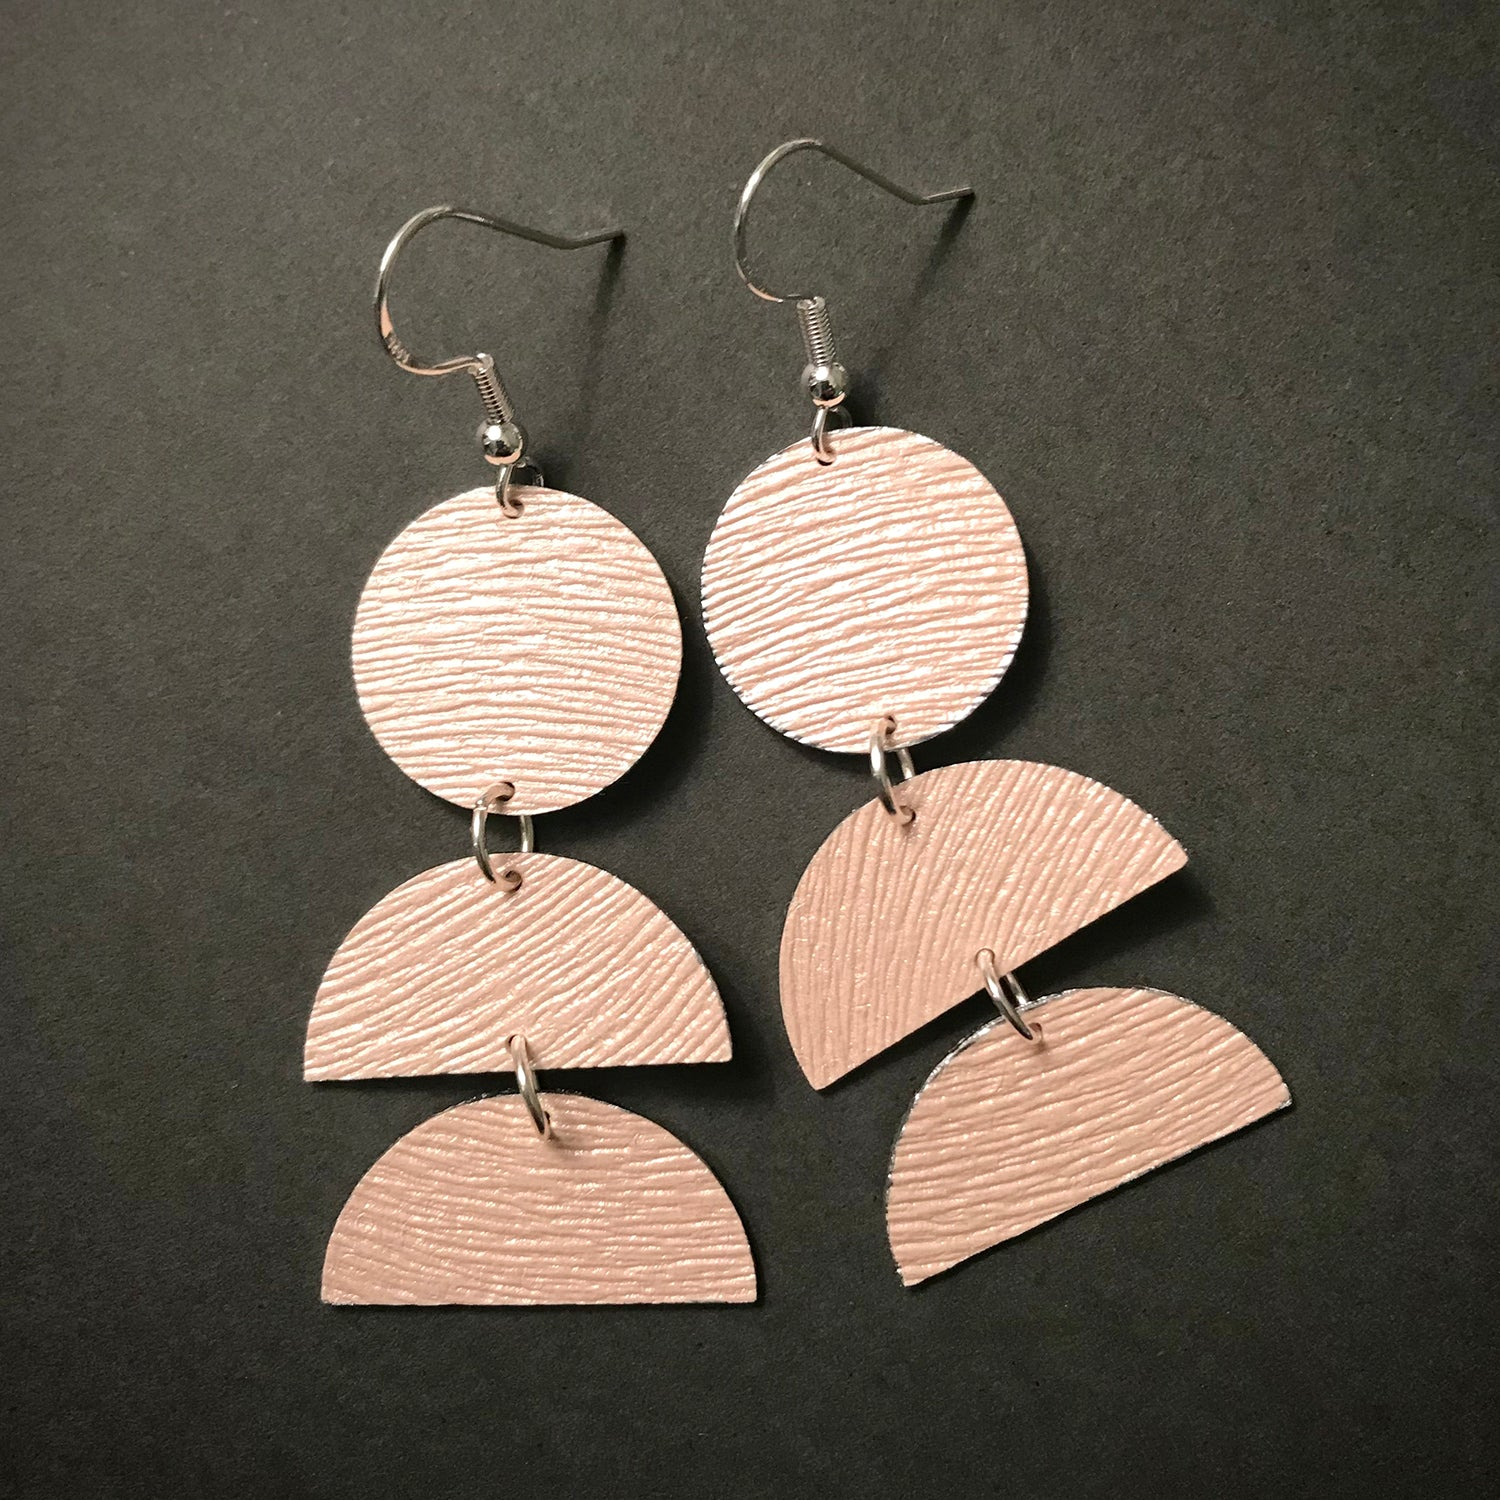 Blush Pinke Layered Upcycled Earrings from Gracie Nicole